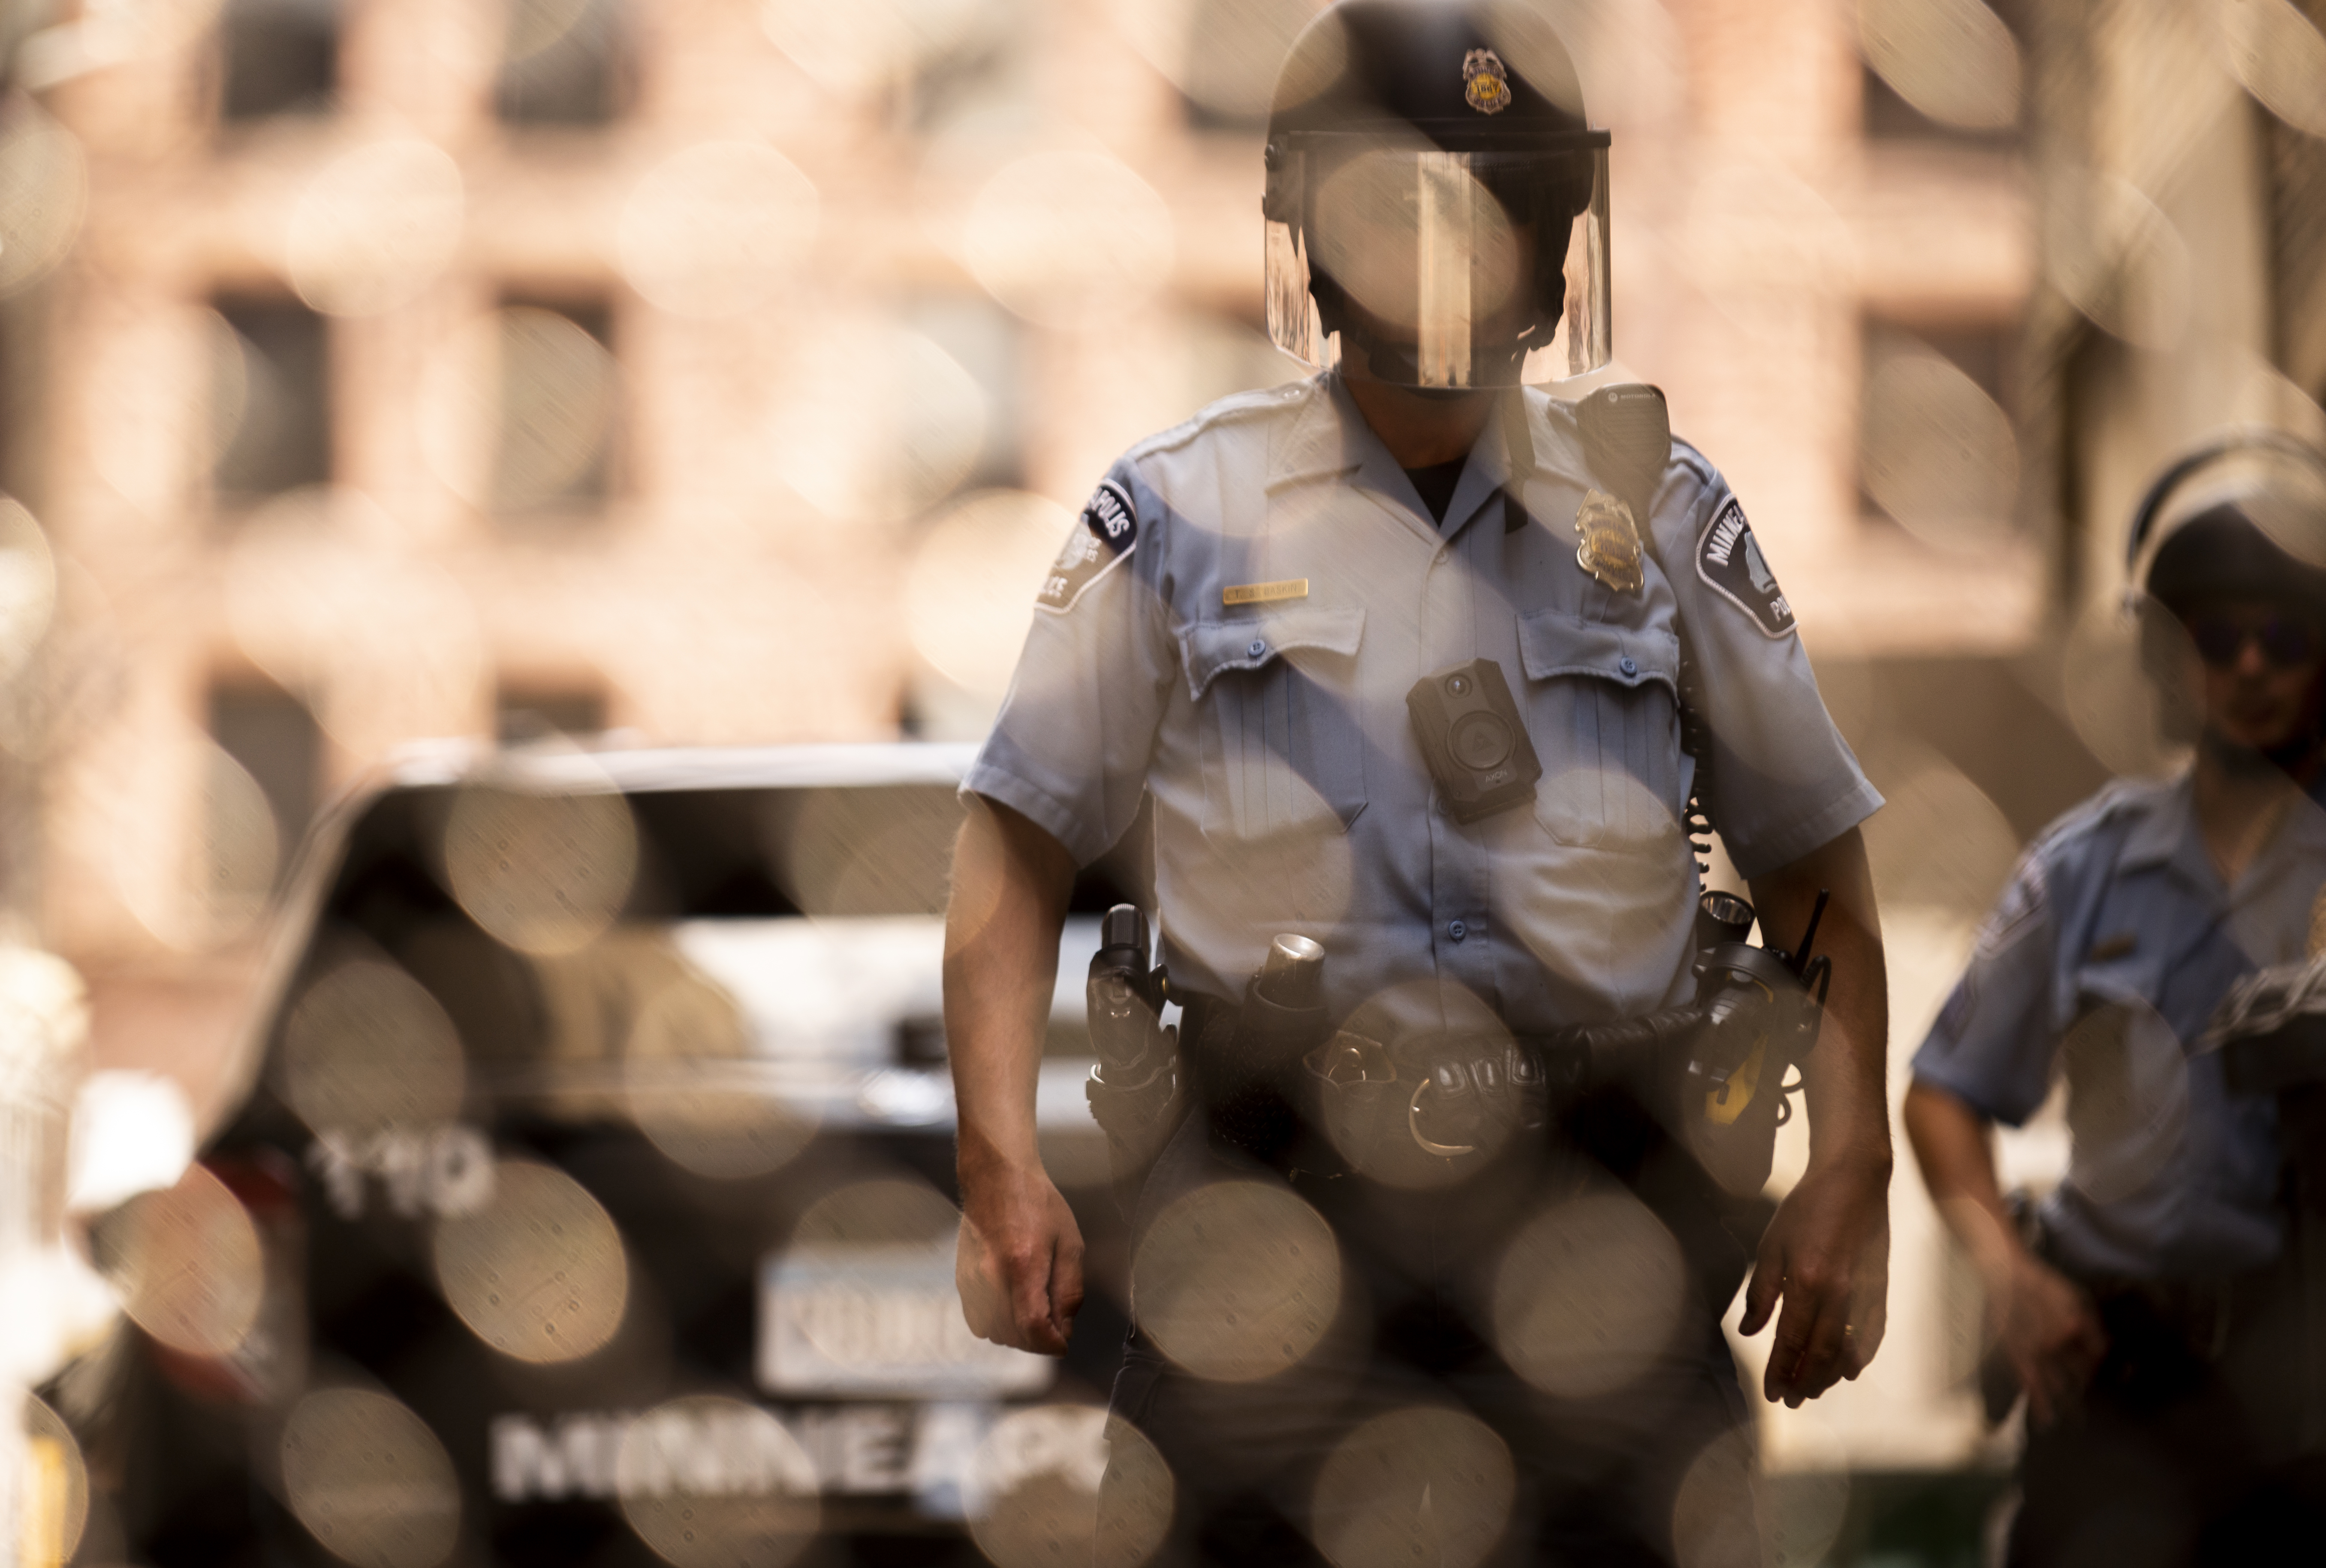 Members of the Minneapolis Police Department seen through a chain link gate on June 13, in Minneapolis, Minnesota.